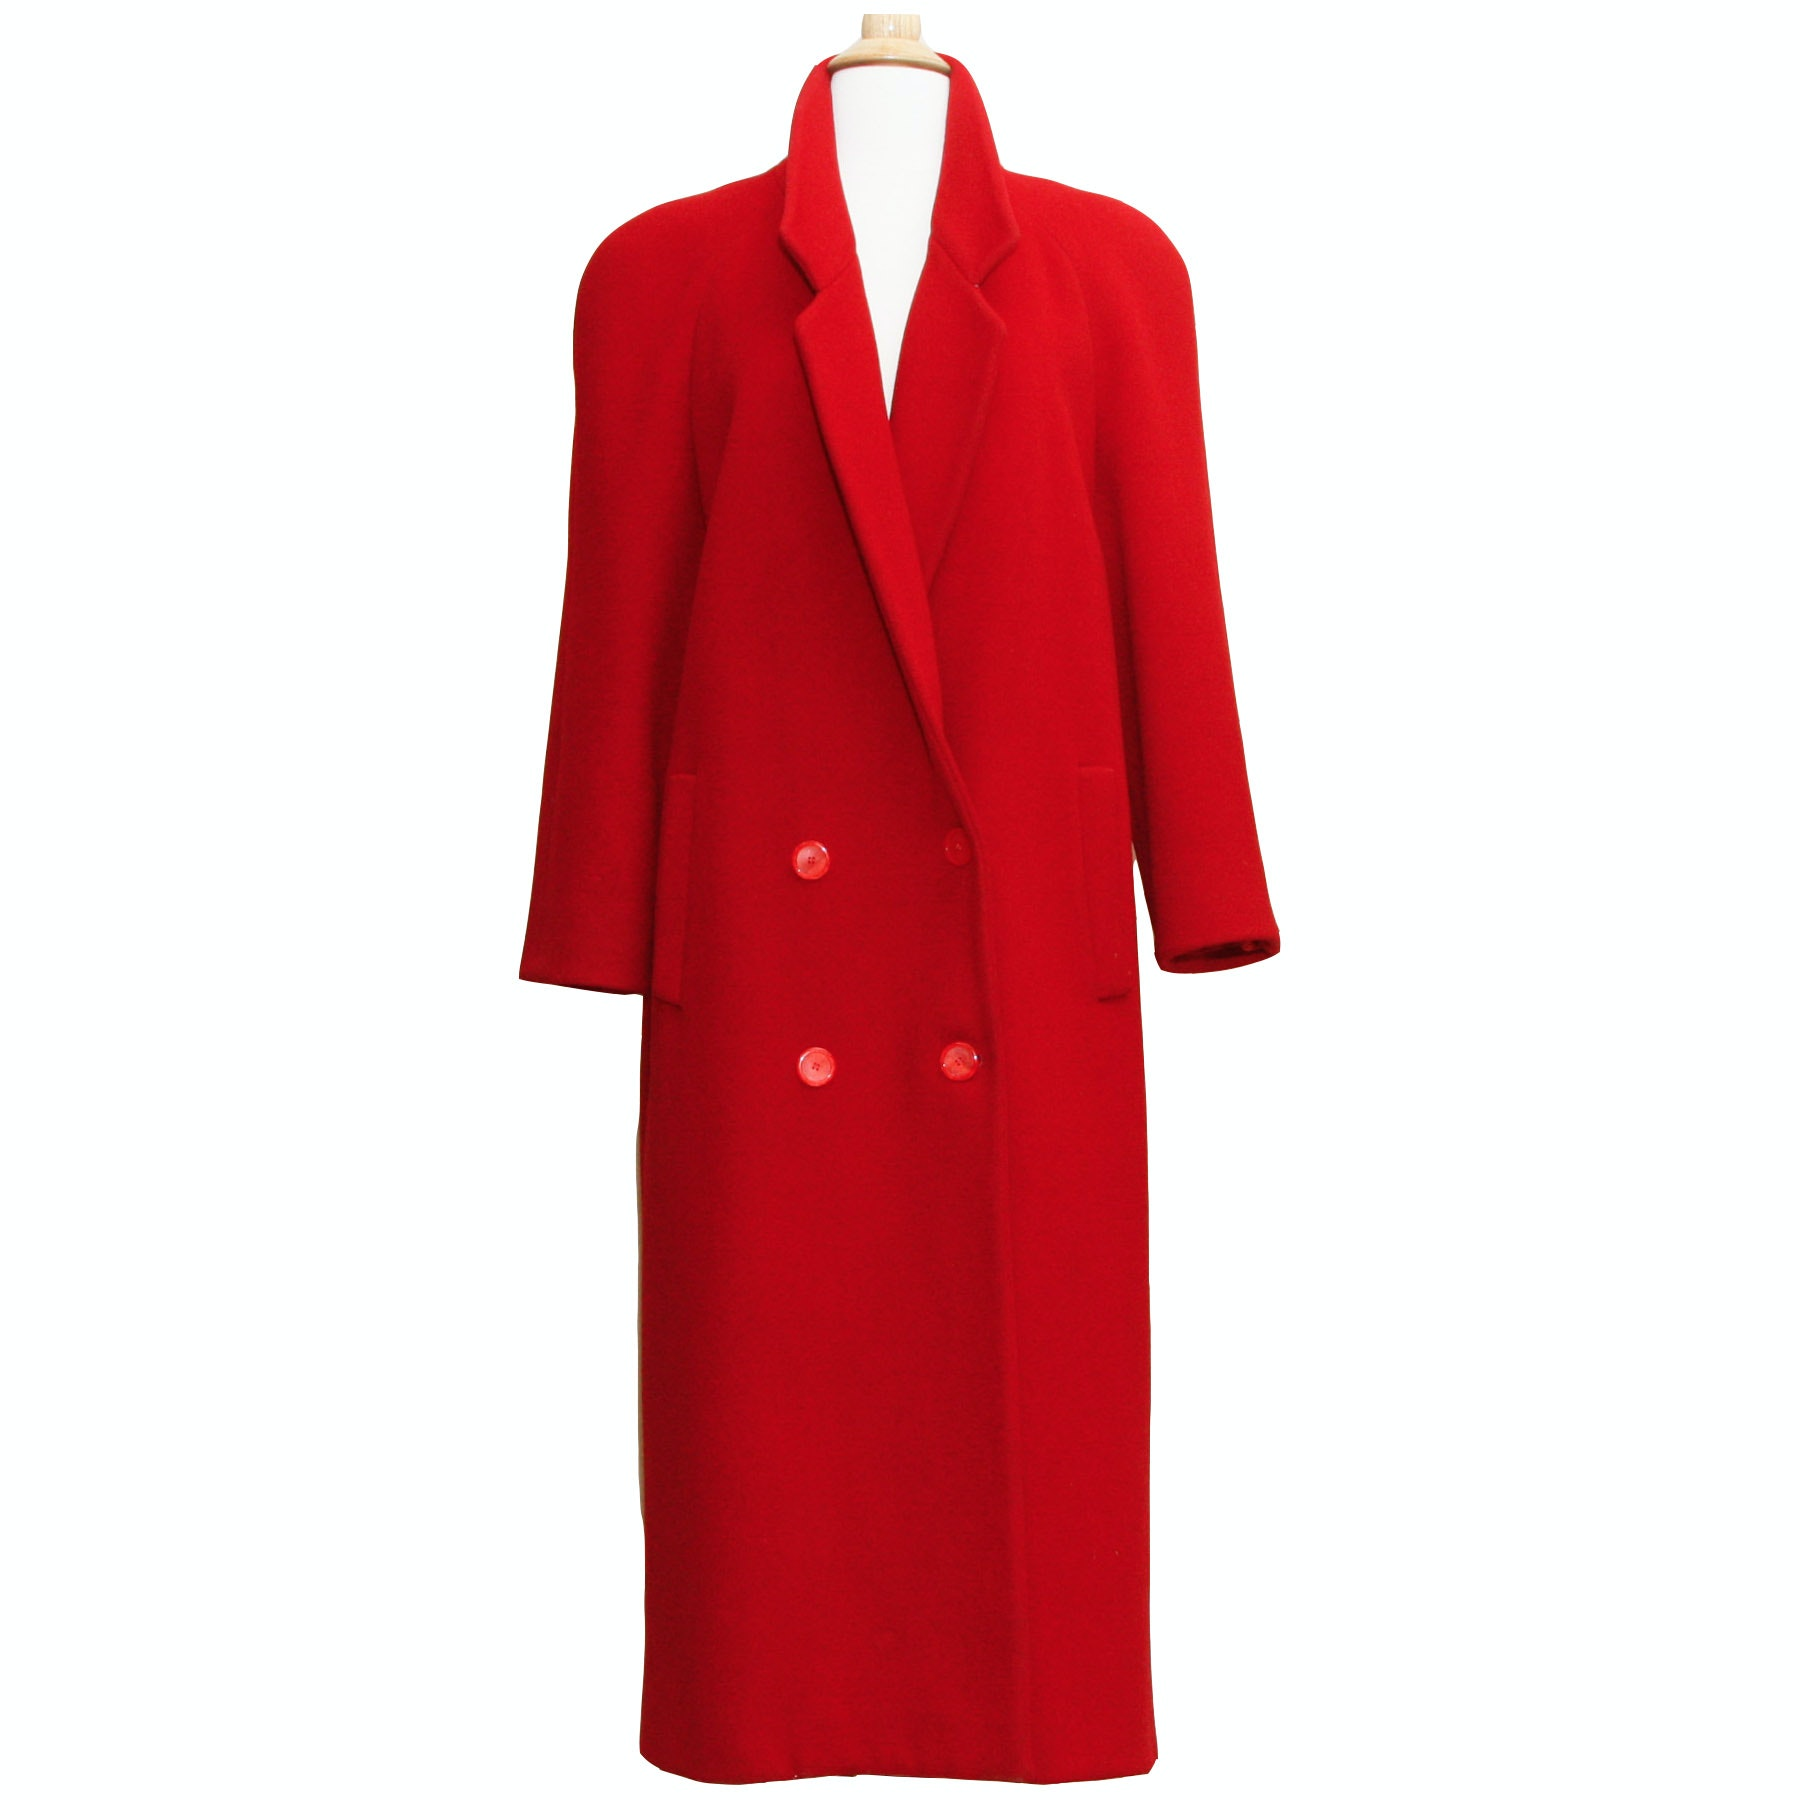 Forstmann Fabulaine Red Wool Double-Breasted Full-Length Coat